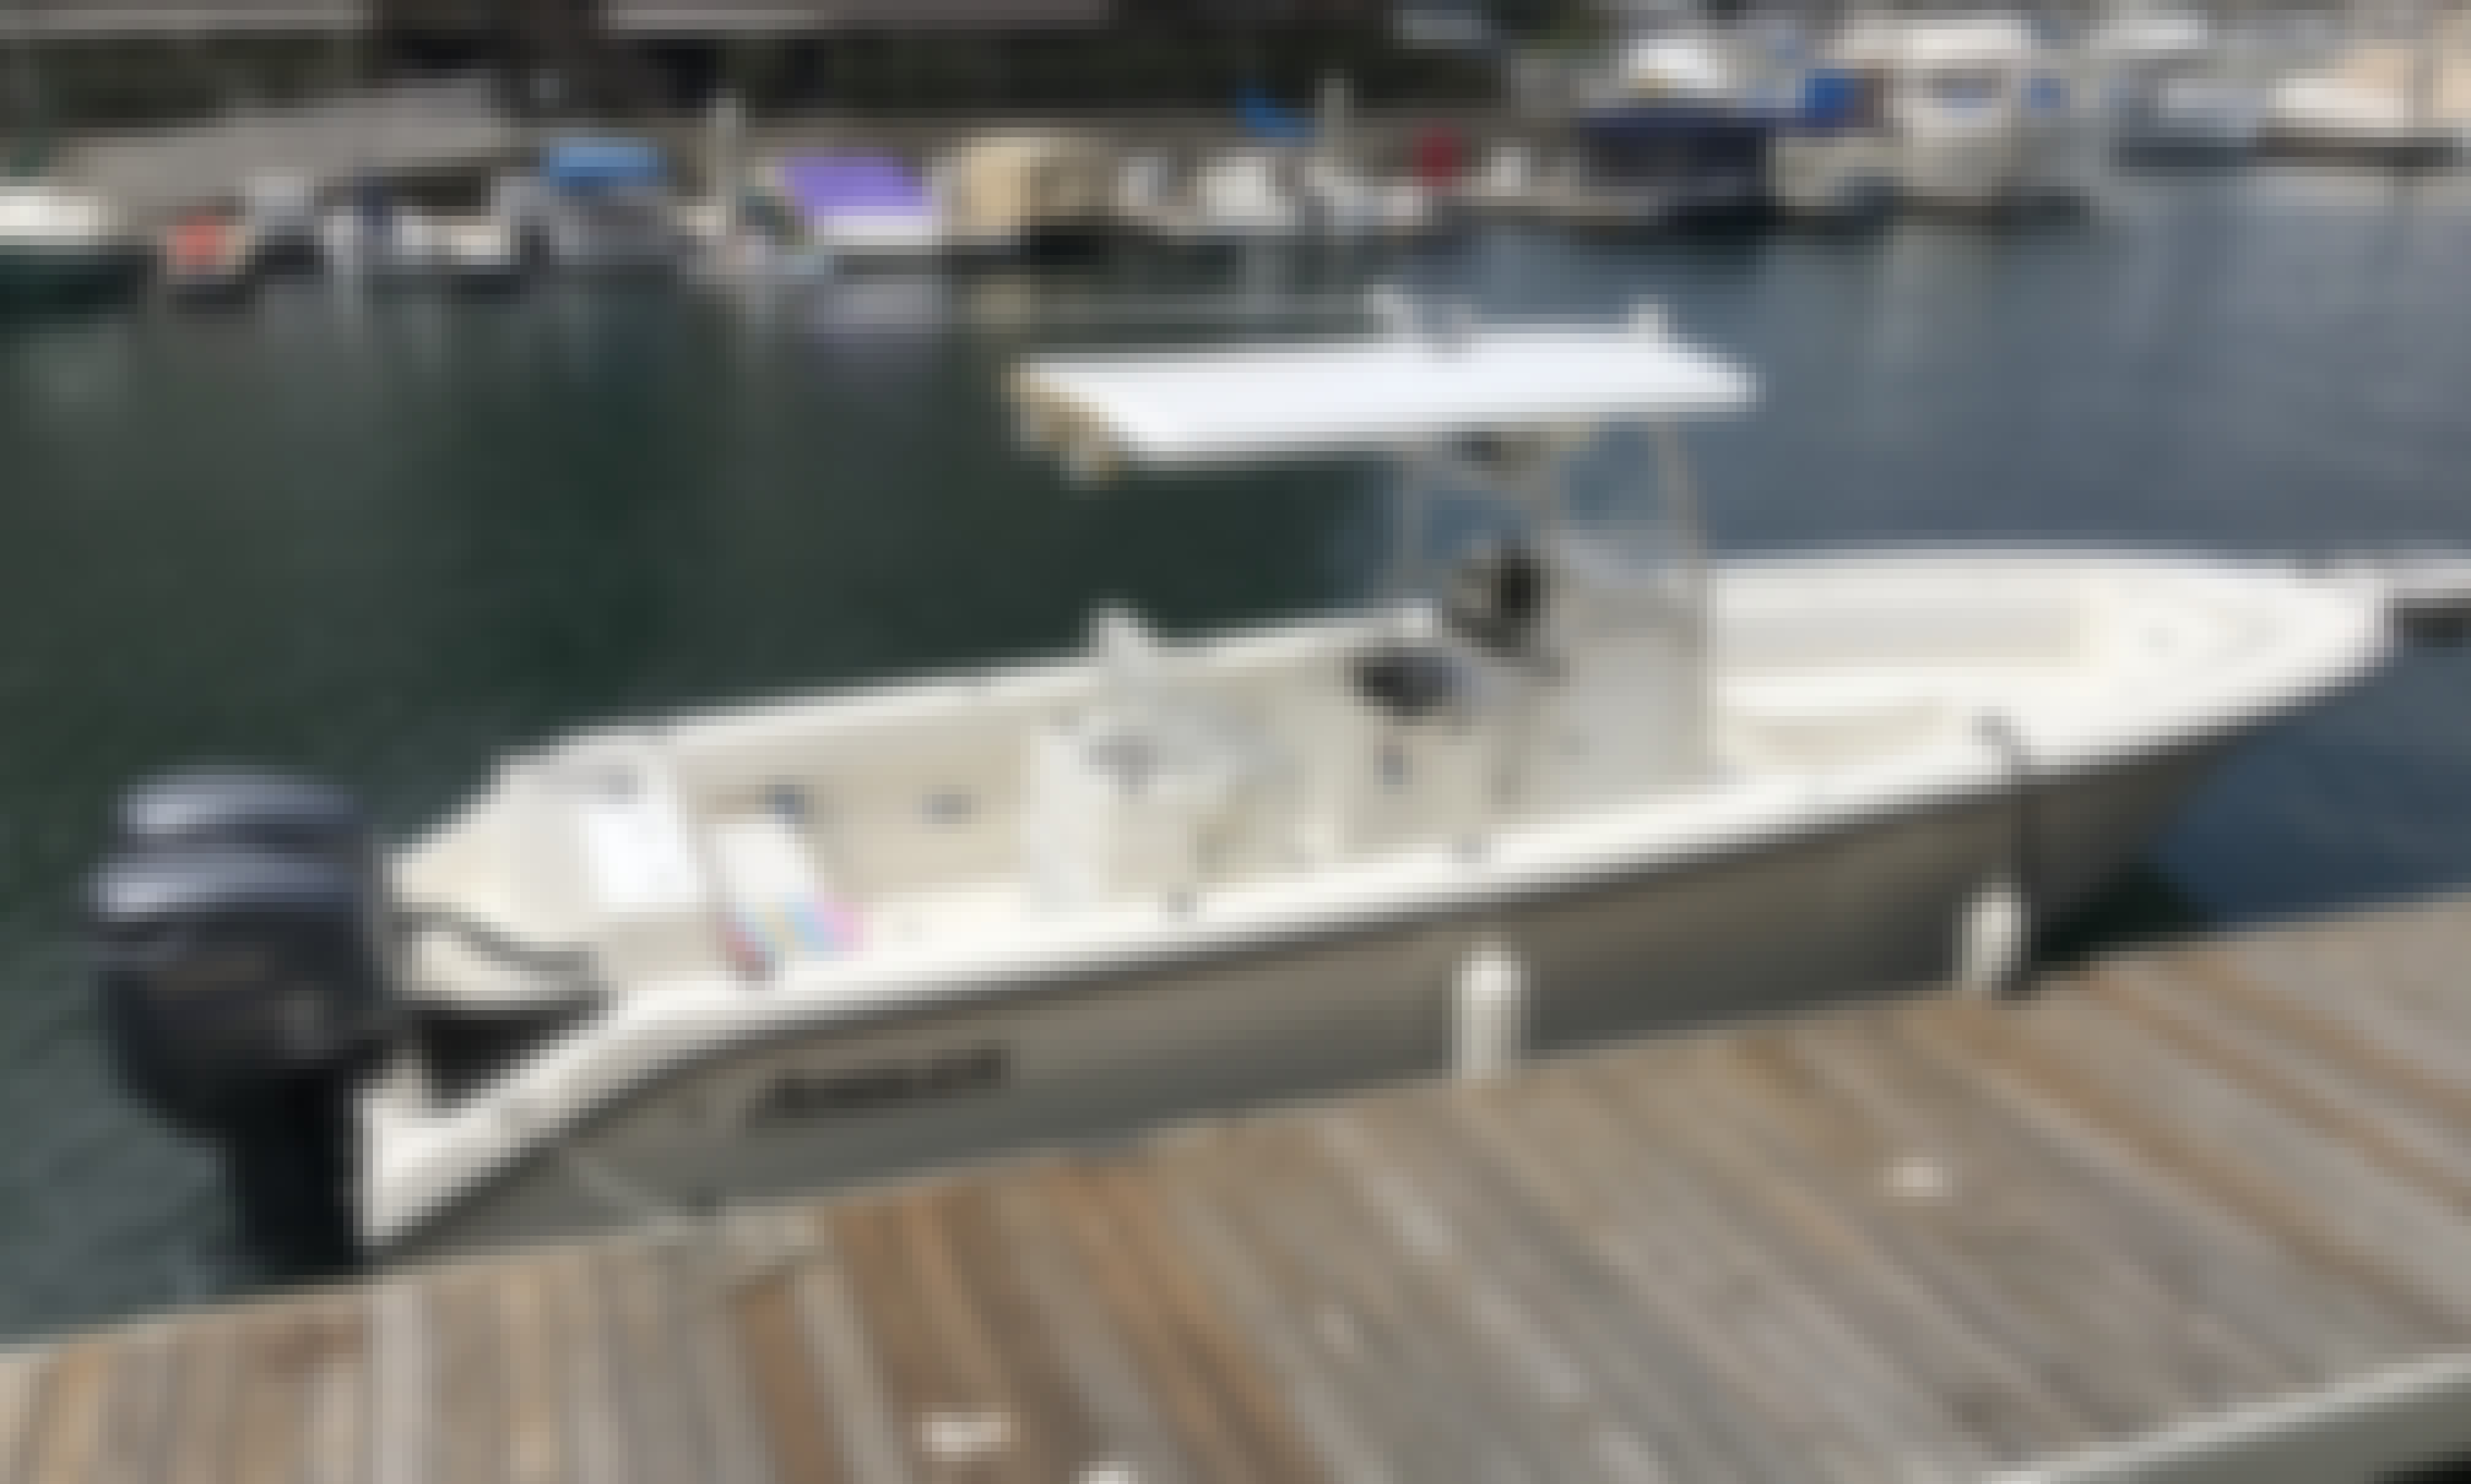 Very Roomy Angler Boat with room to walk around in Long Beach!